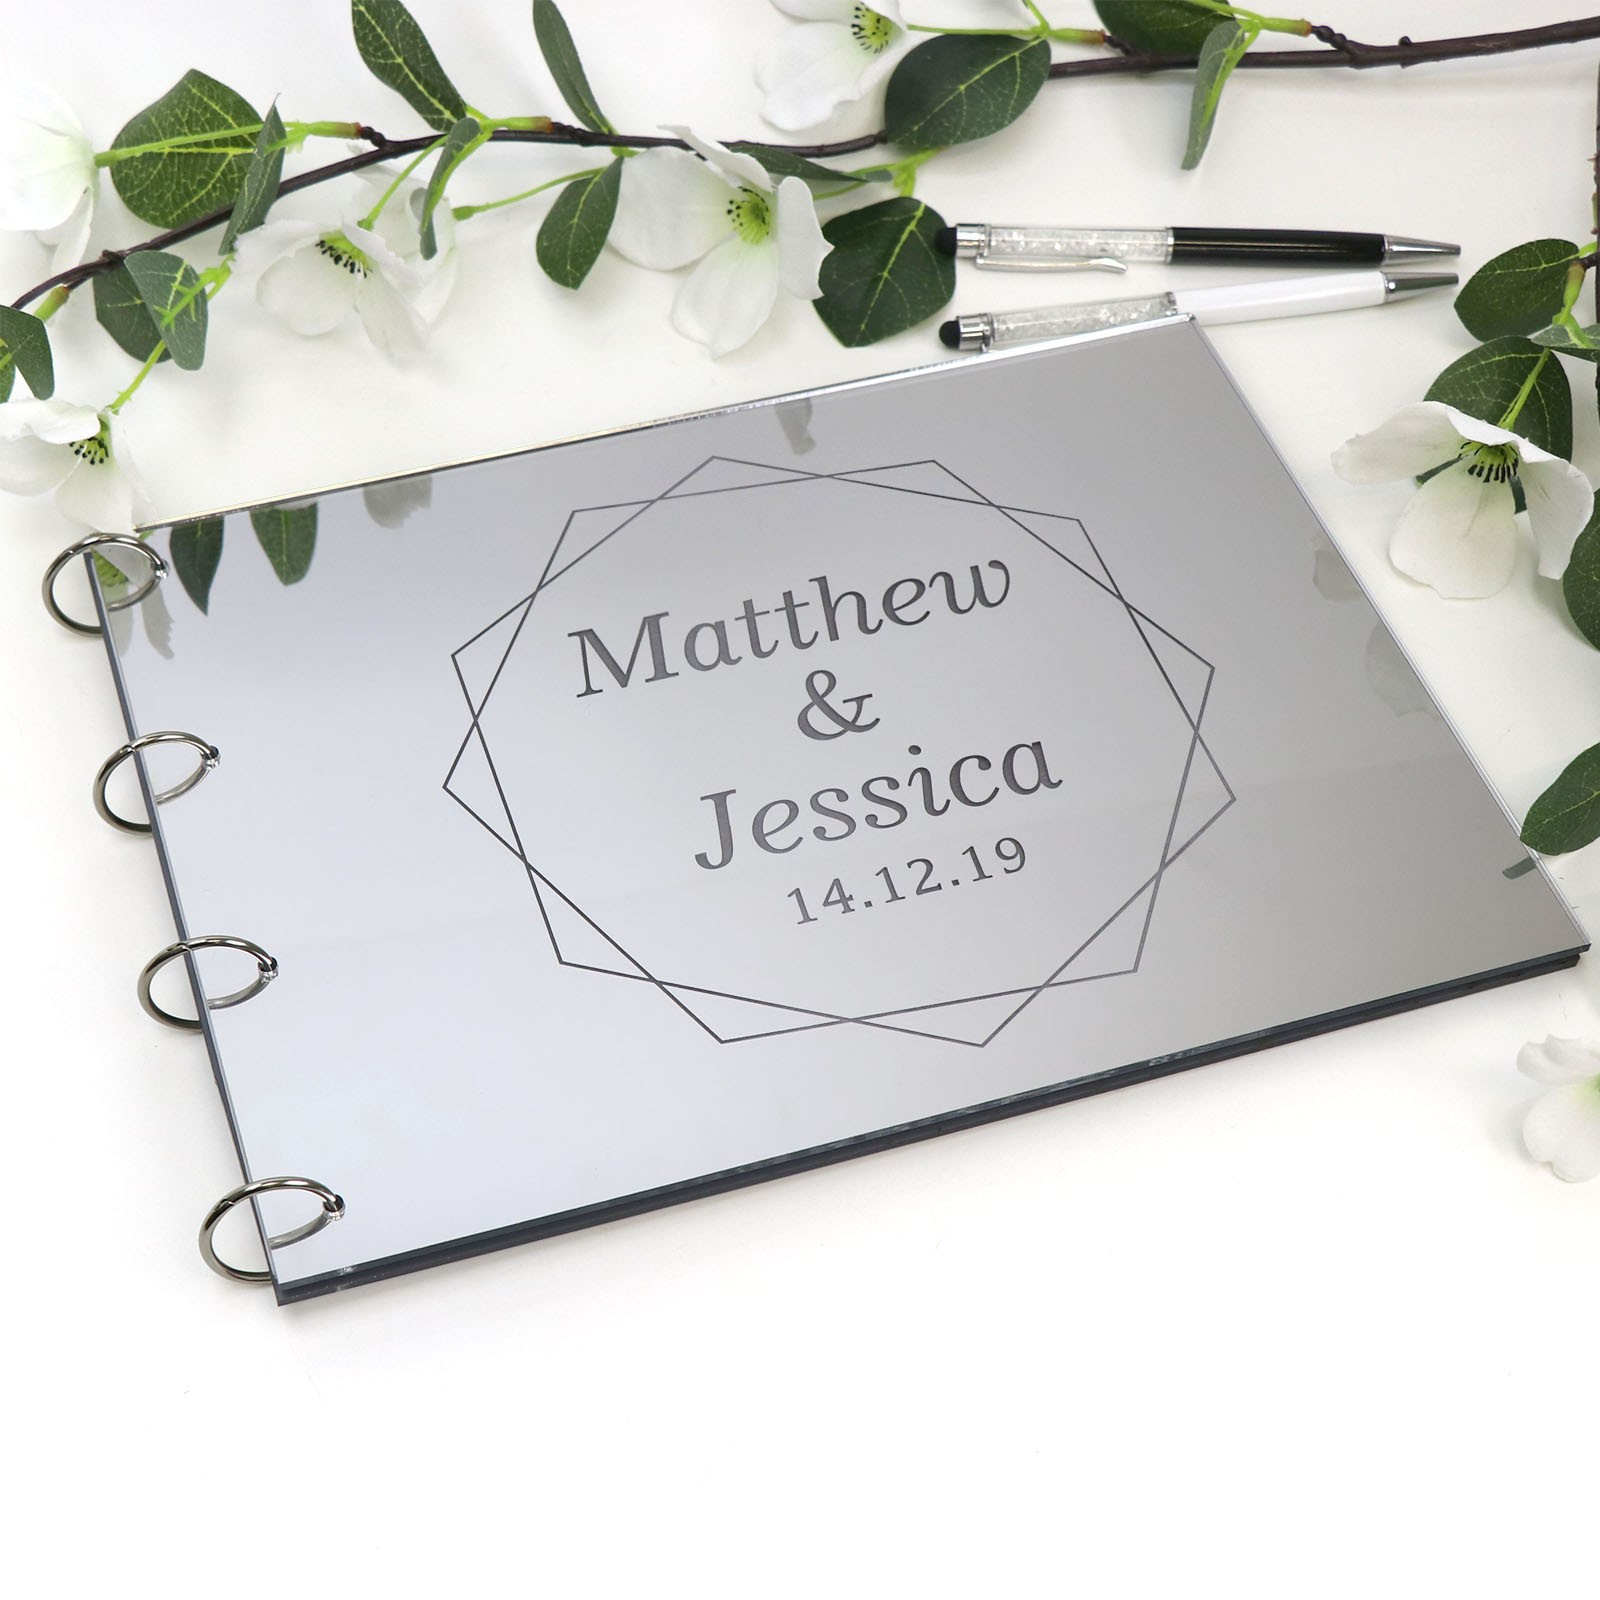 WEDDING EVENTS PLACE NAMES MIRROR ACRYLIC PERSONALISED Wedding Supplies Invitation Cards STYLE 5